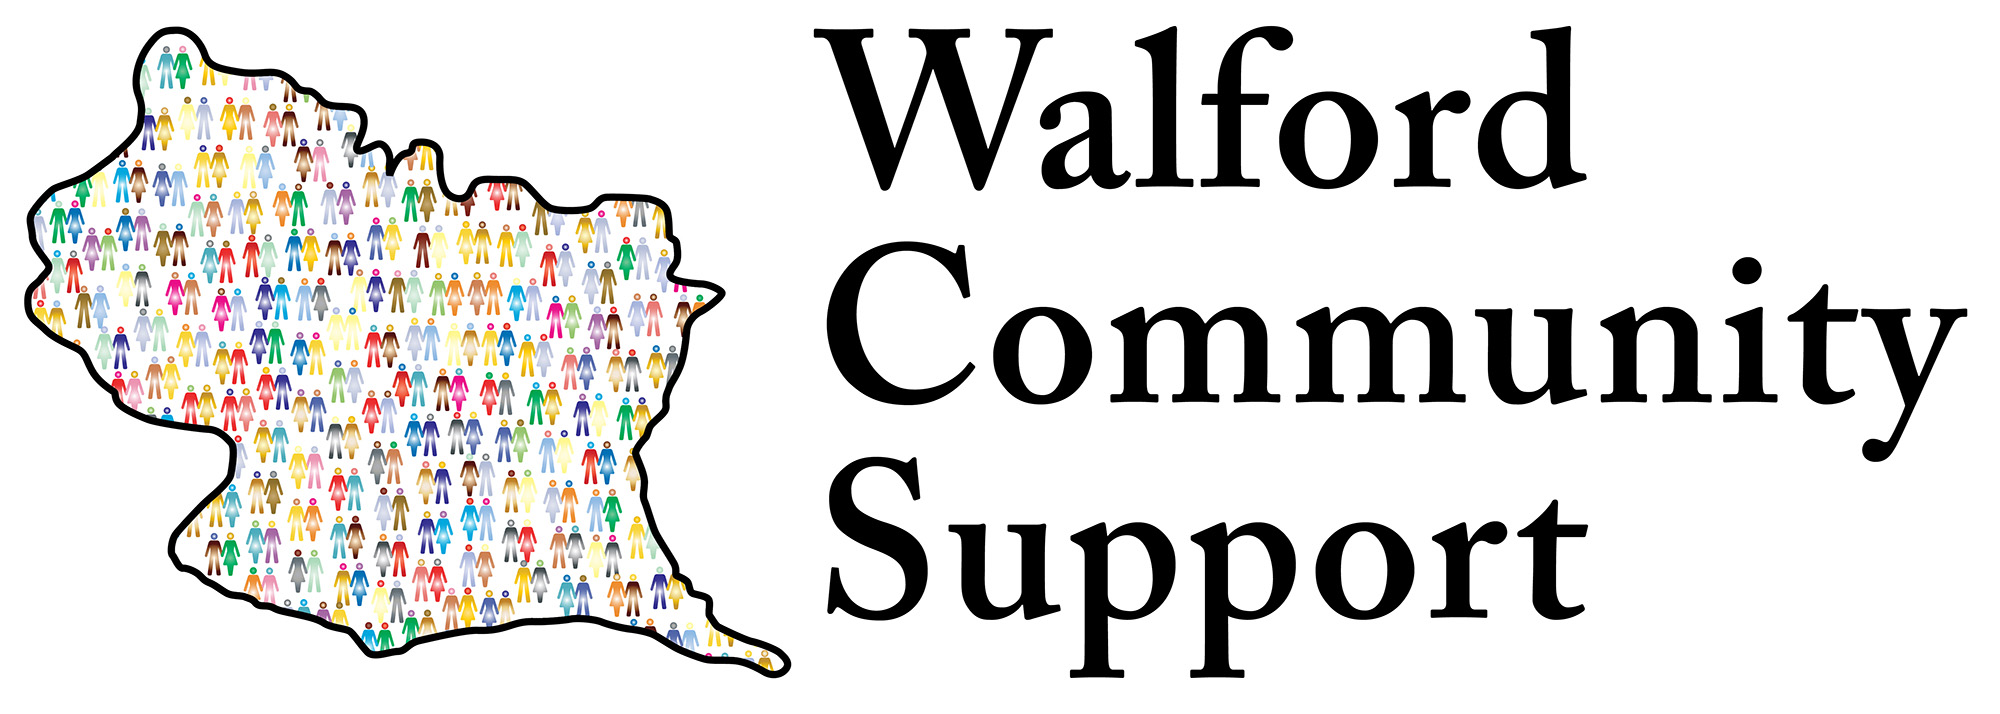 Walford Community Support